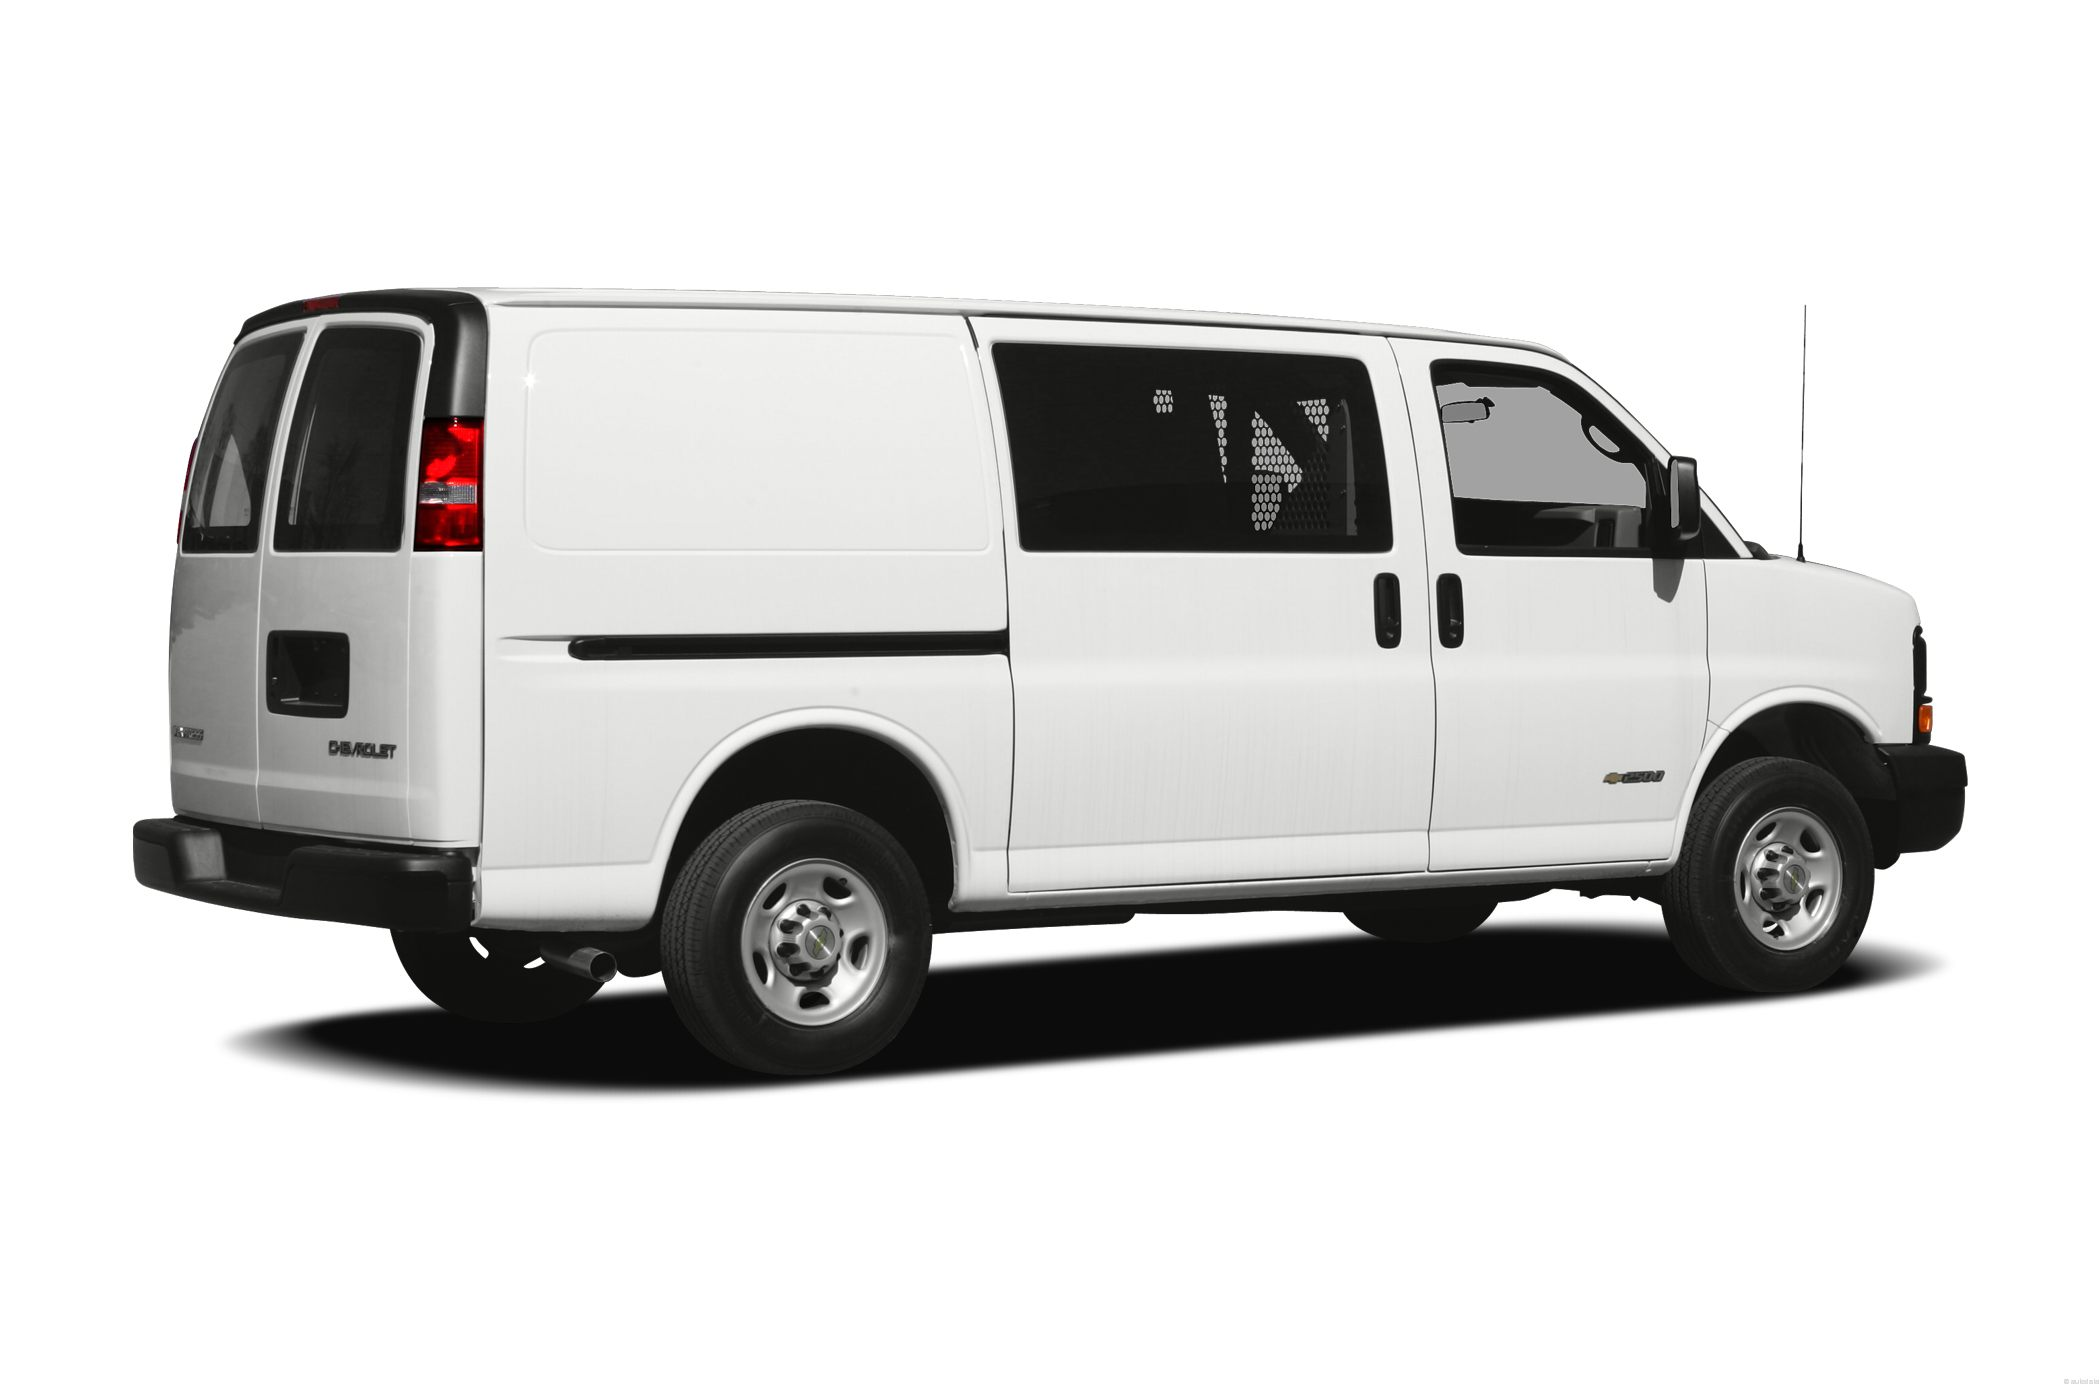 Chevrolet express 2012 photo - 5